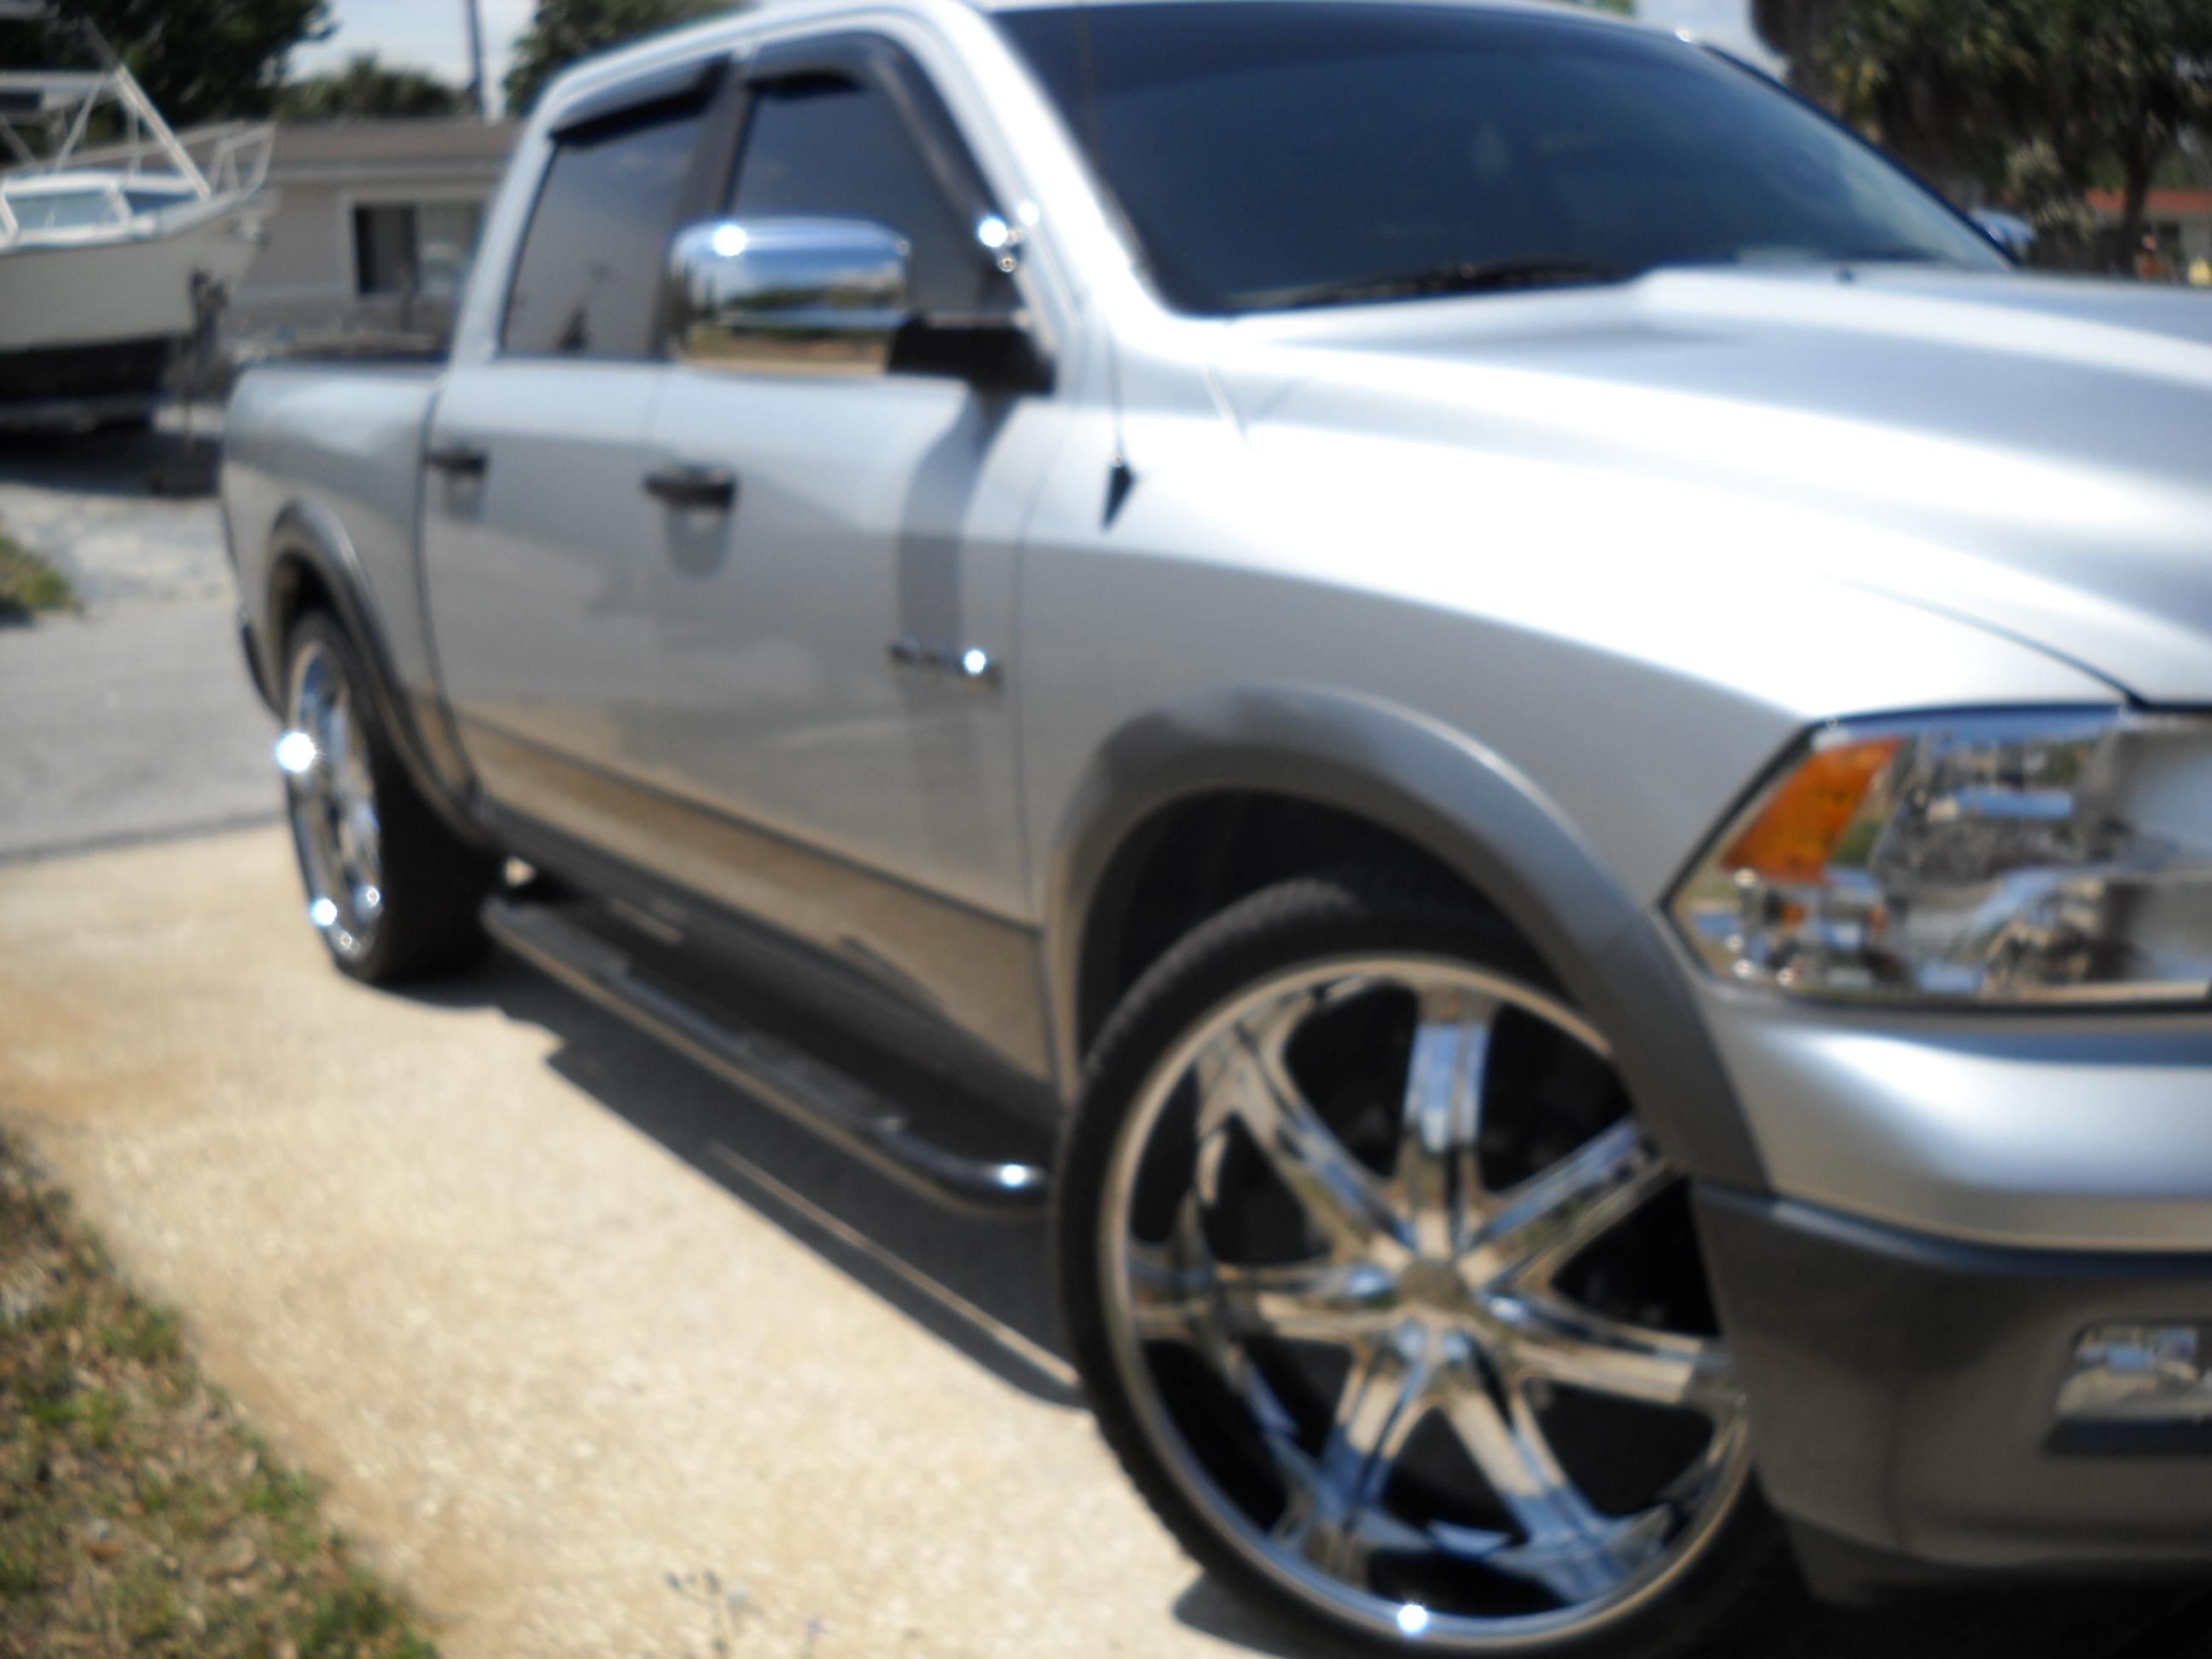 brian321 2009 dodge ram 1500 crew cab specs photos modification info at cardomain. Black Bedroom Furniture Sets. Home Design Ideas